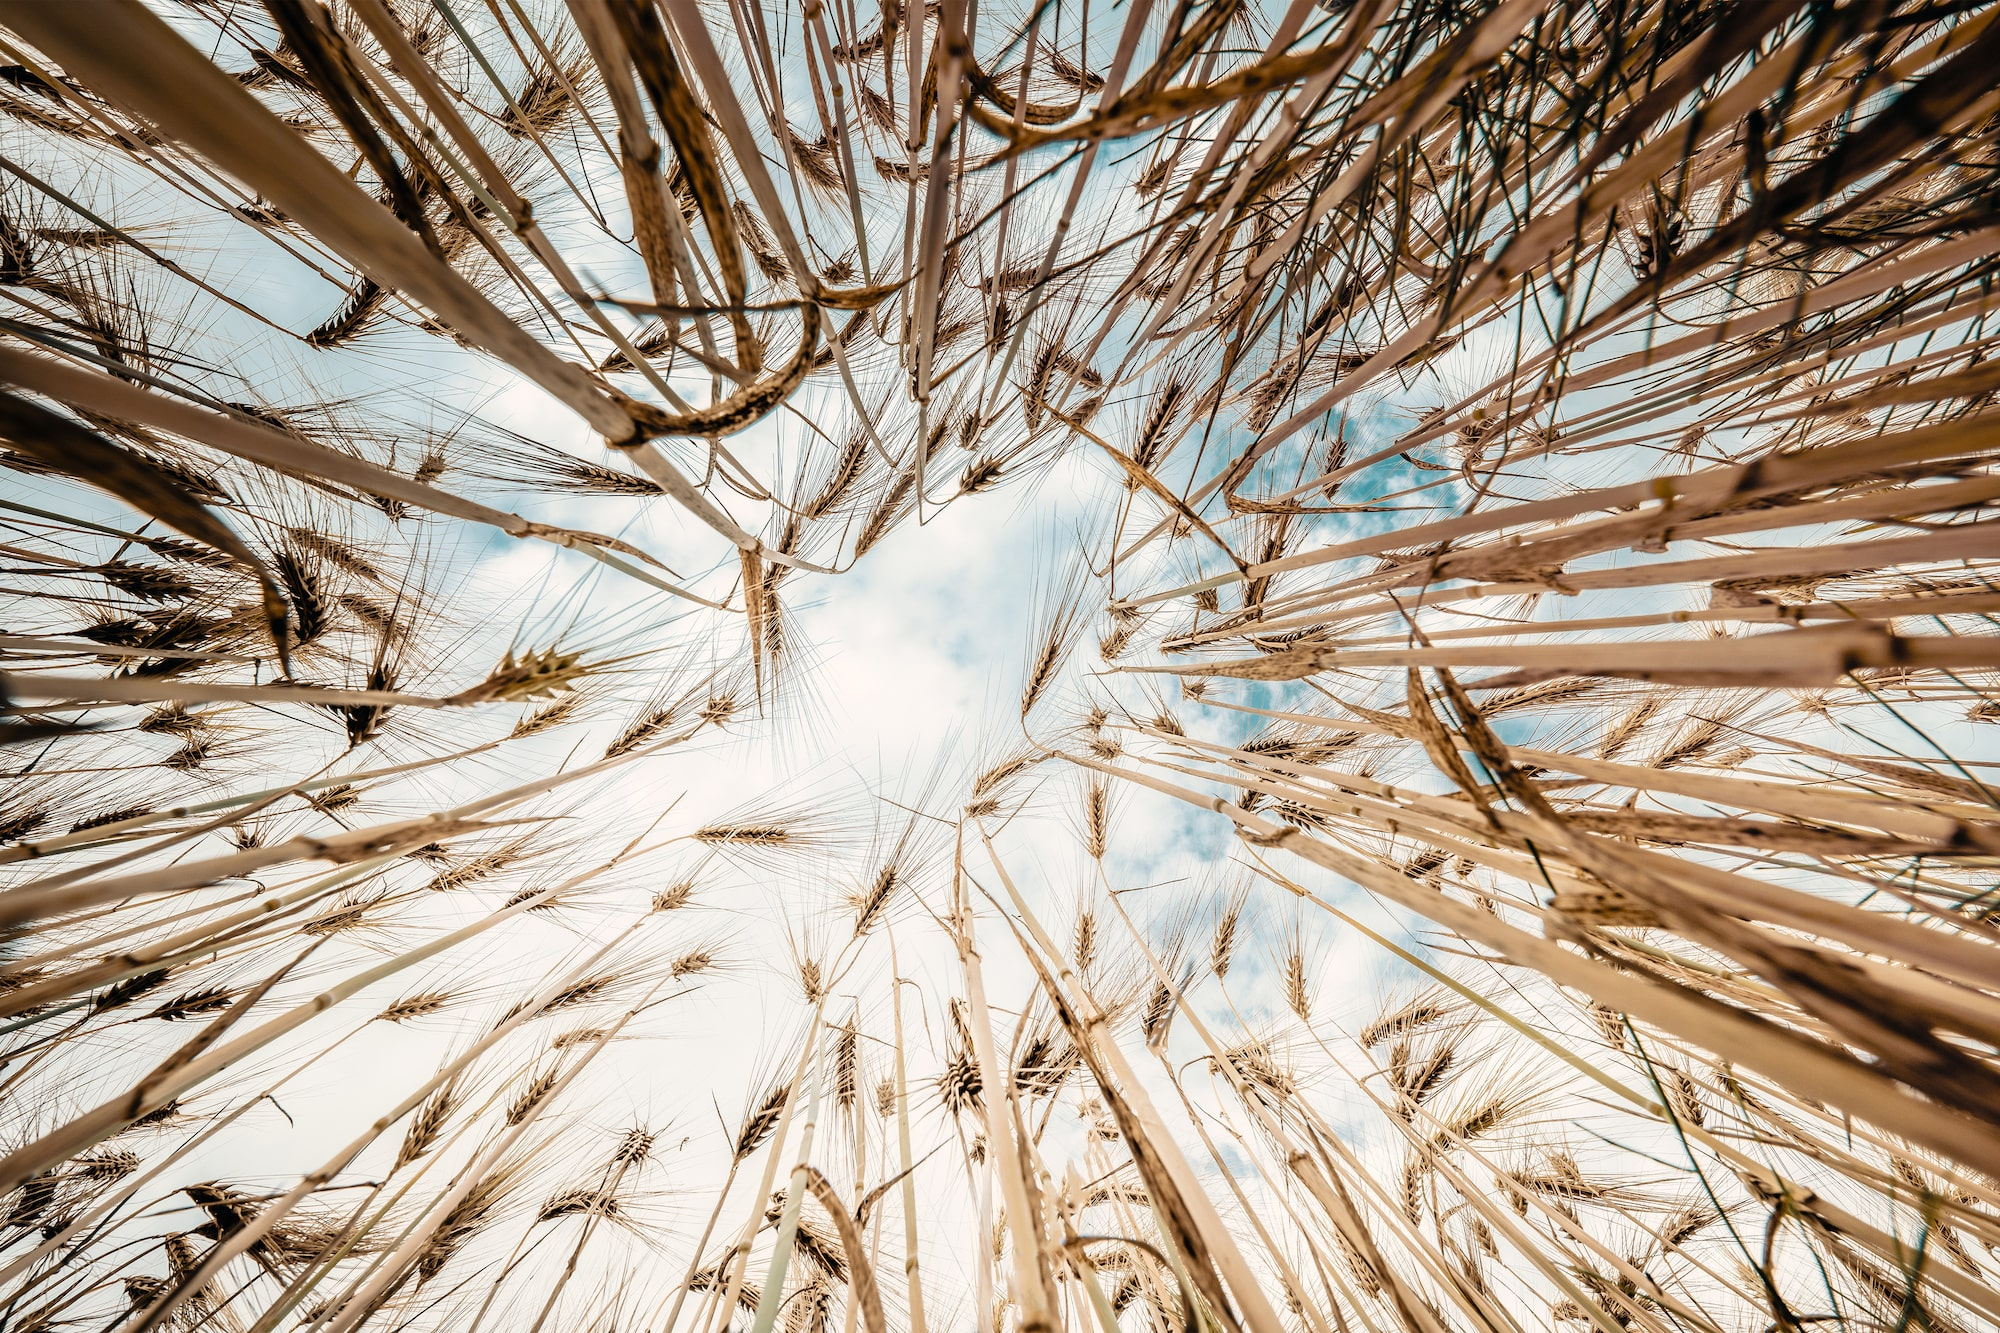 michael schaake sony alpha 7RM4 looking up through barley stems at the blue sky with clouds